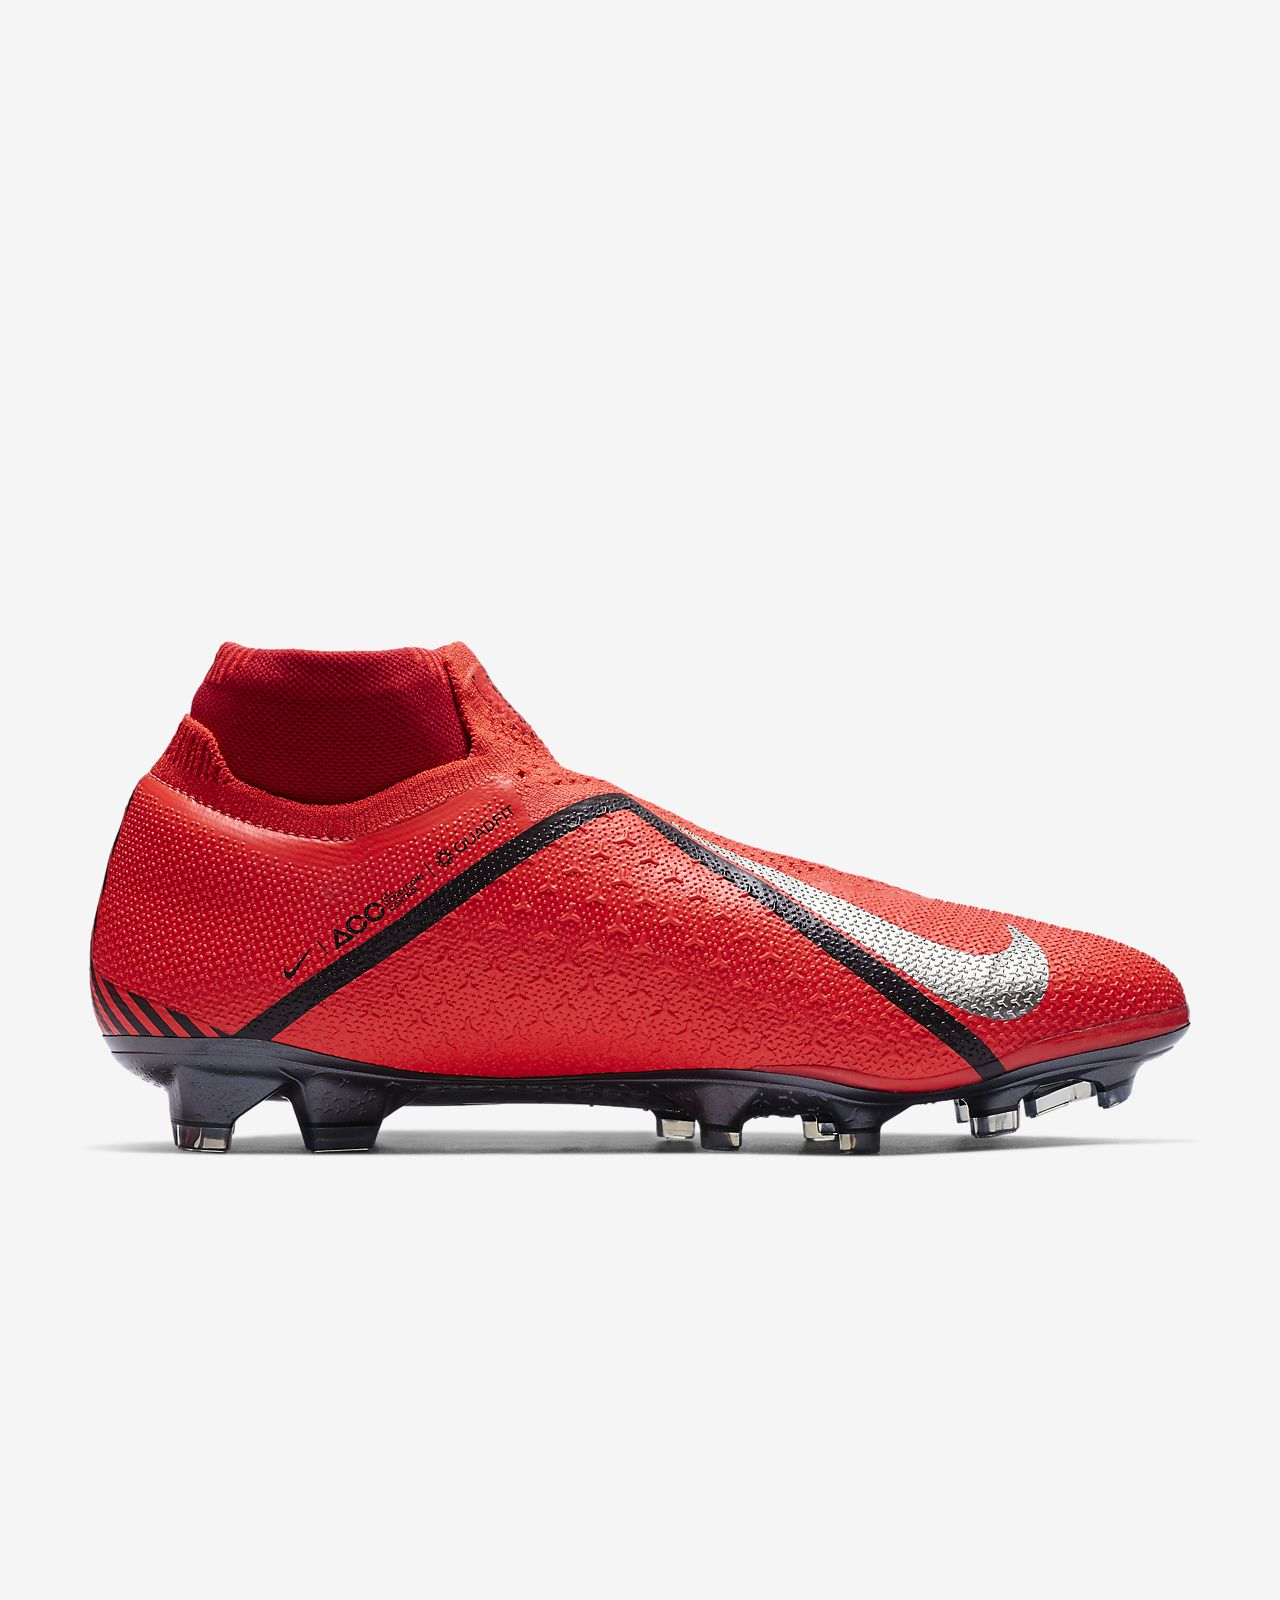 9abe4b68ebd ... Nike PhantomVSN Elite Dynamic Fit Game Over FG Firm-Ground Football Boot